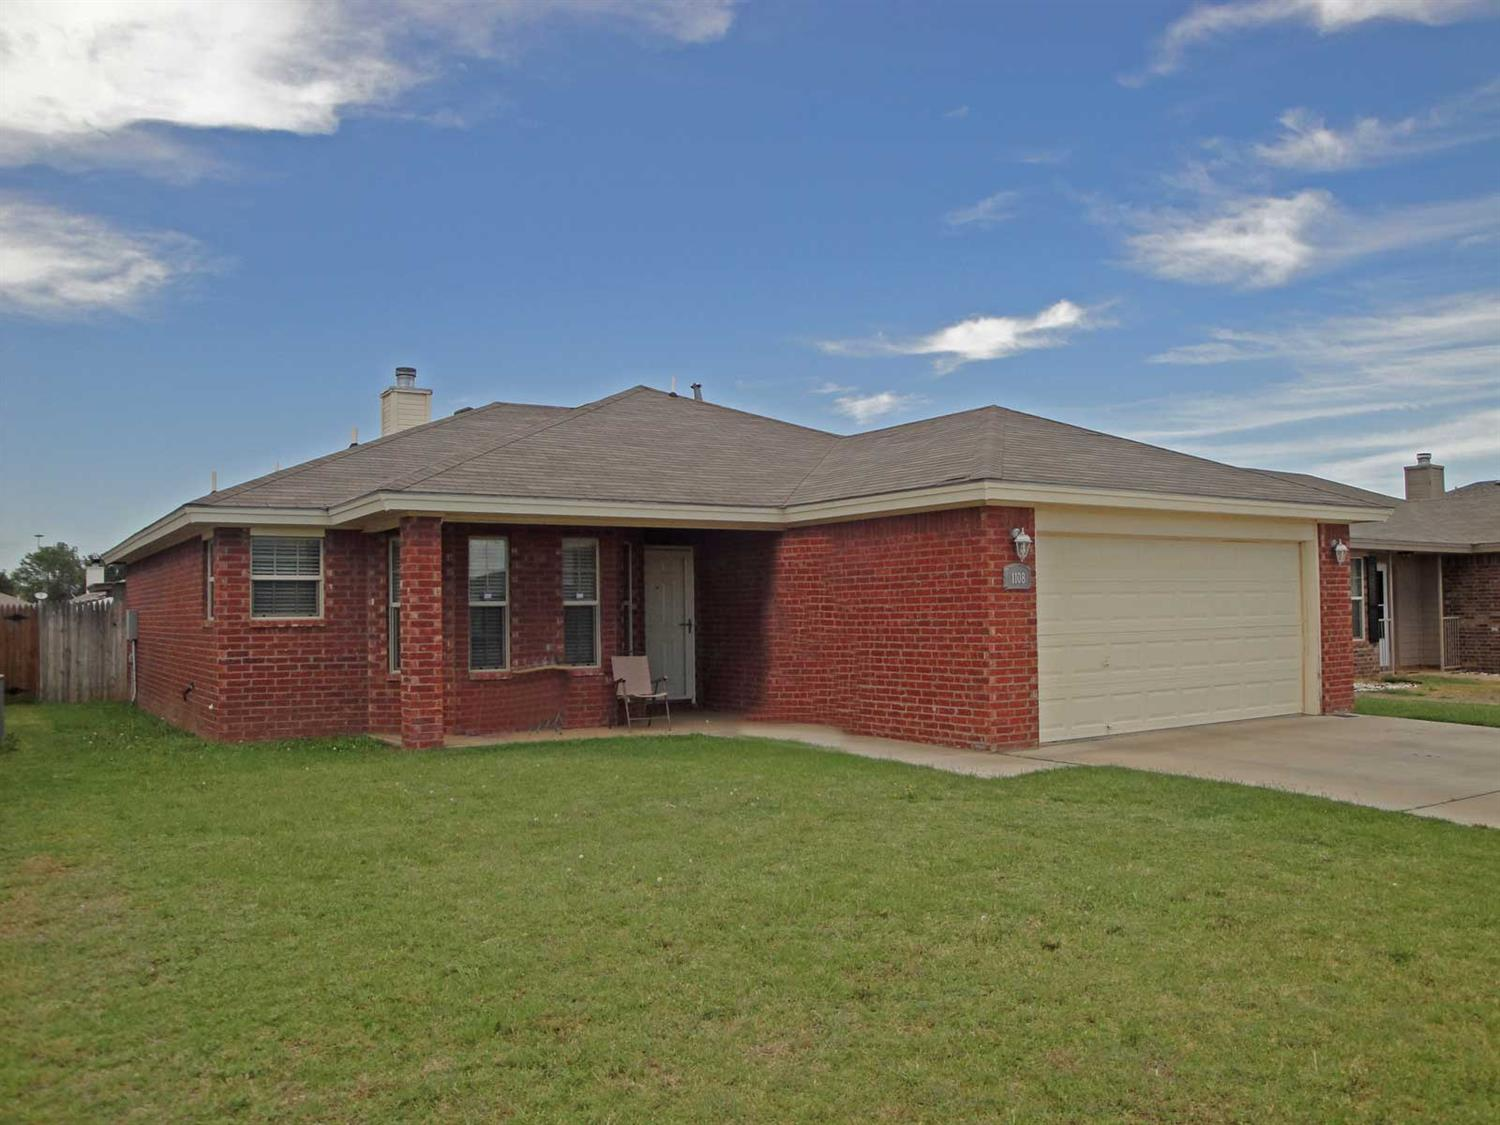 1108 N 78th Street, Lubbock in Lubbock County, TX 79423 Home for Sale